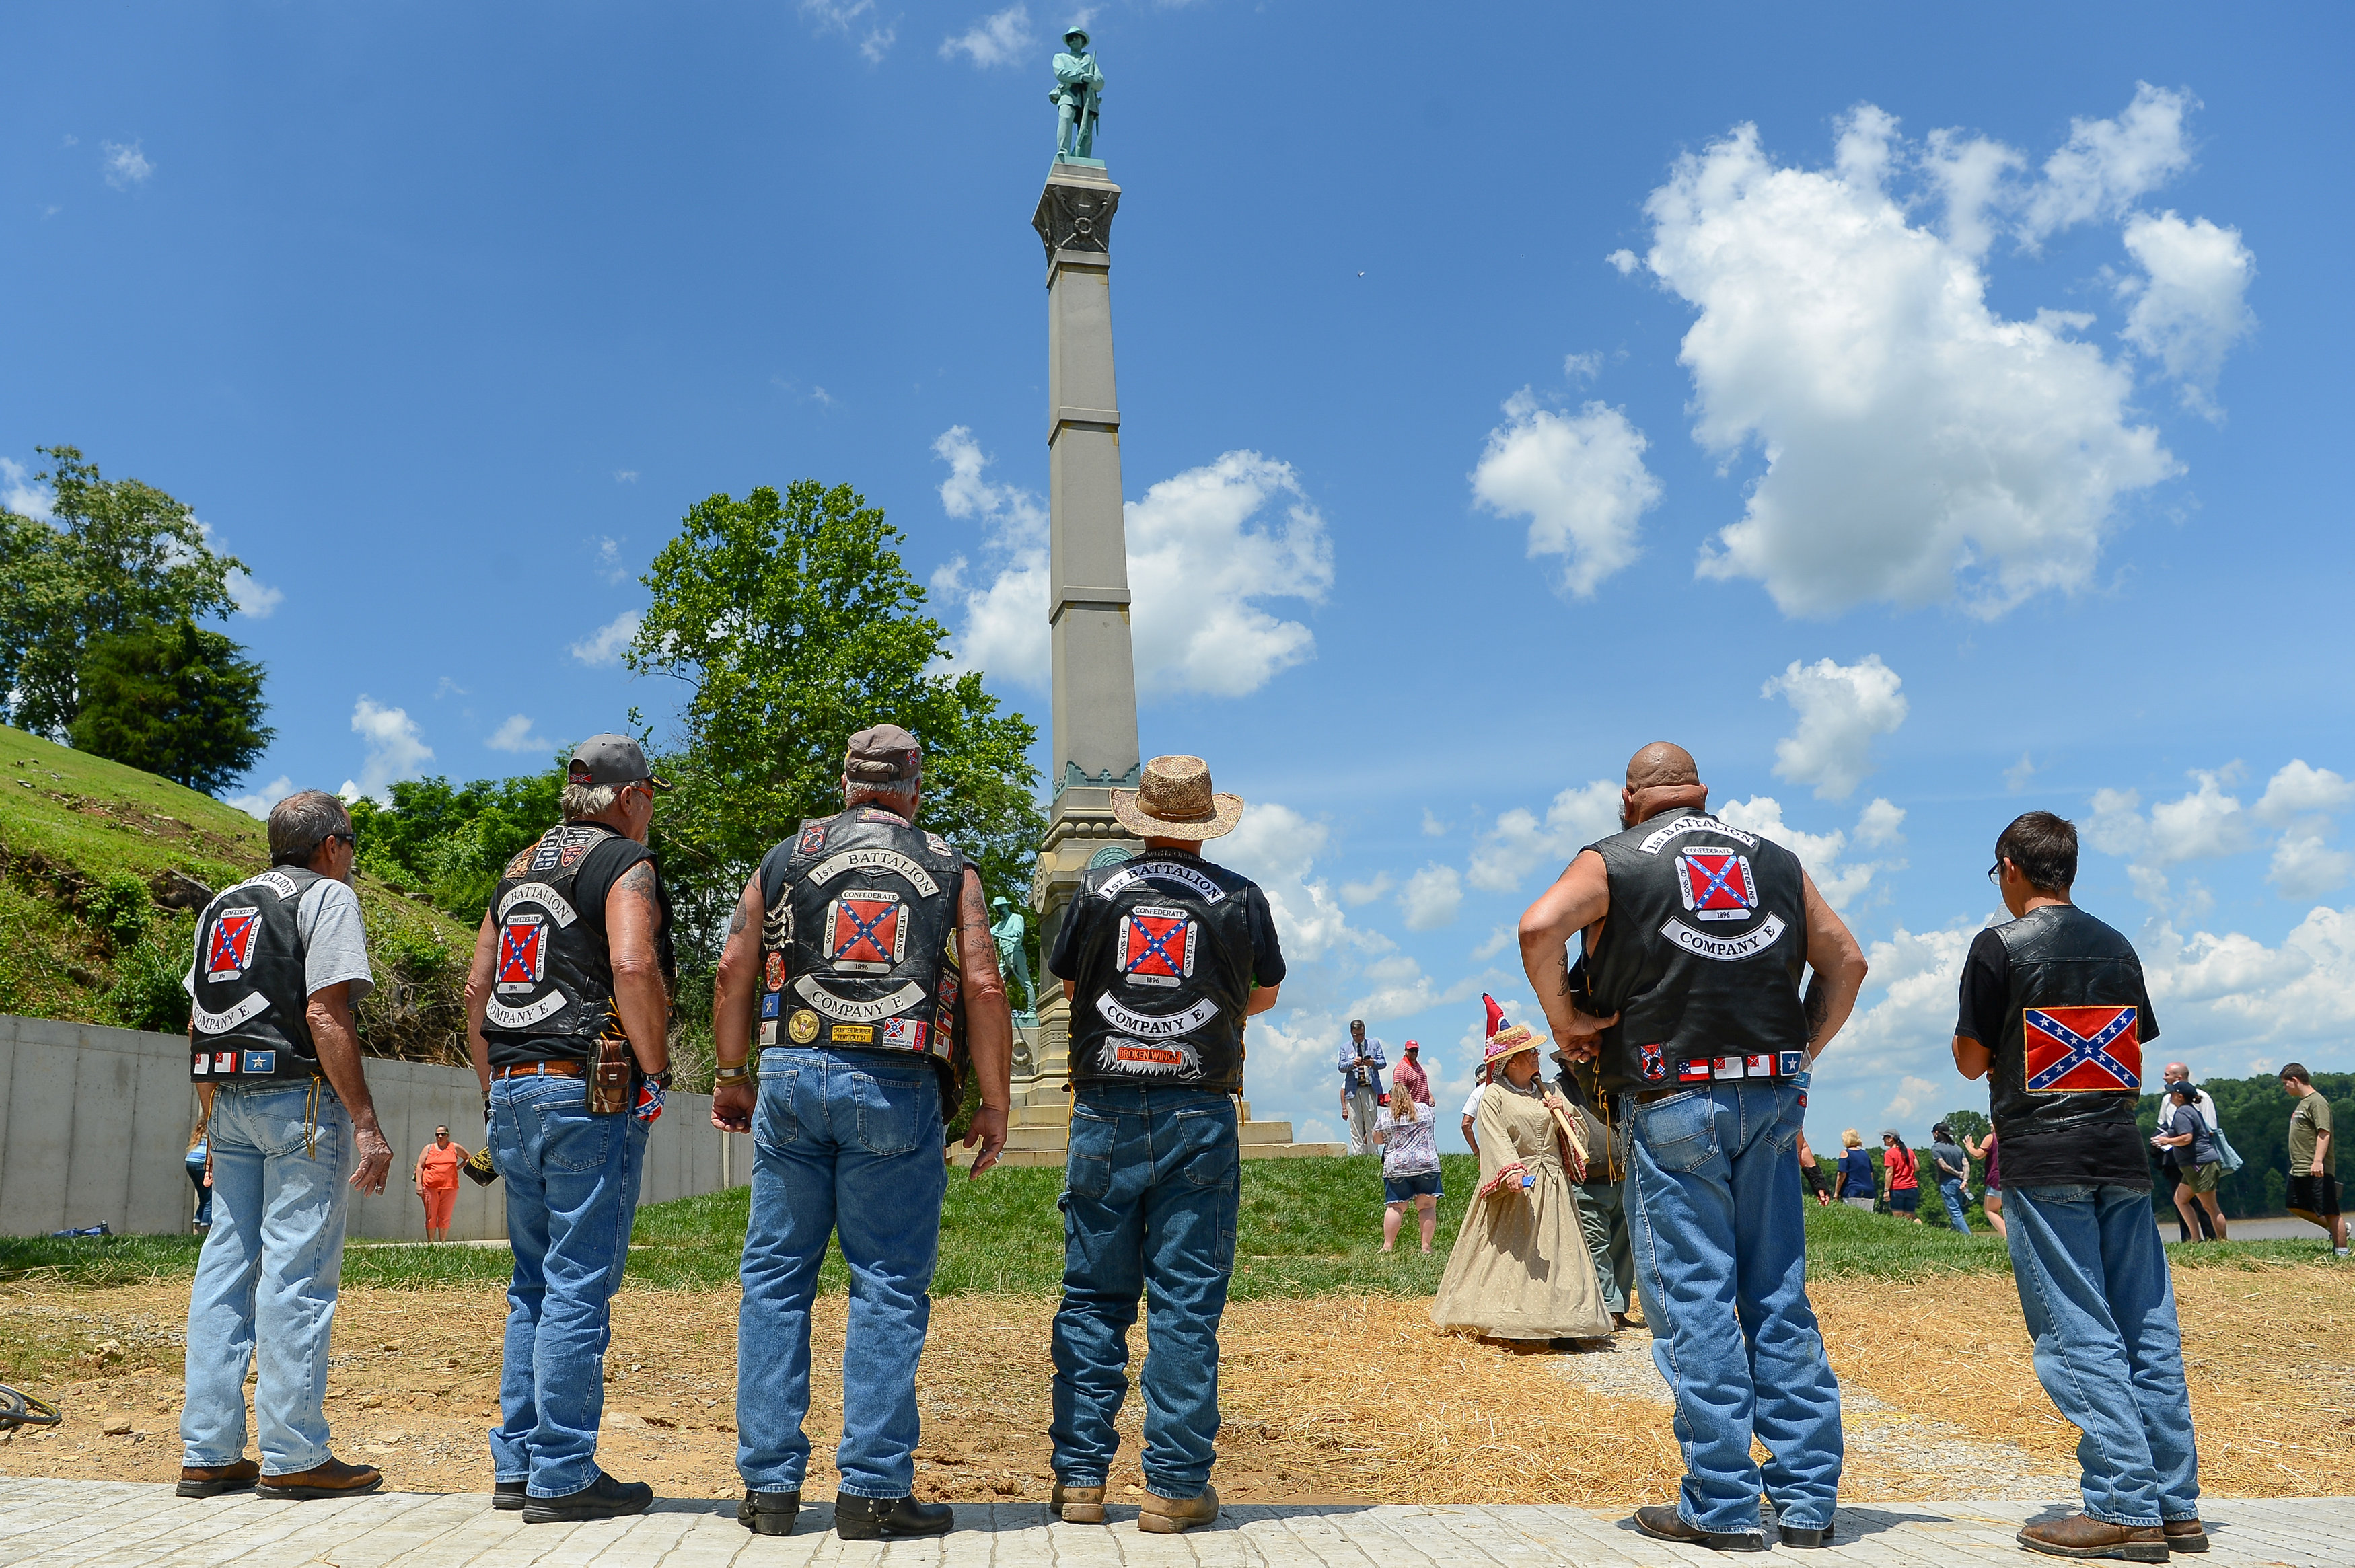 Members from The Sons of Confederate Veterans stand before a dedication ceremony in Brandenburg, Kentucky, U.S. May 29, 2017 for a Civil War Confederate Soldier Memorial recently removed from the campus of the University of Louisville. REUTERS/Bryan Woolston